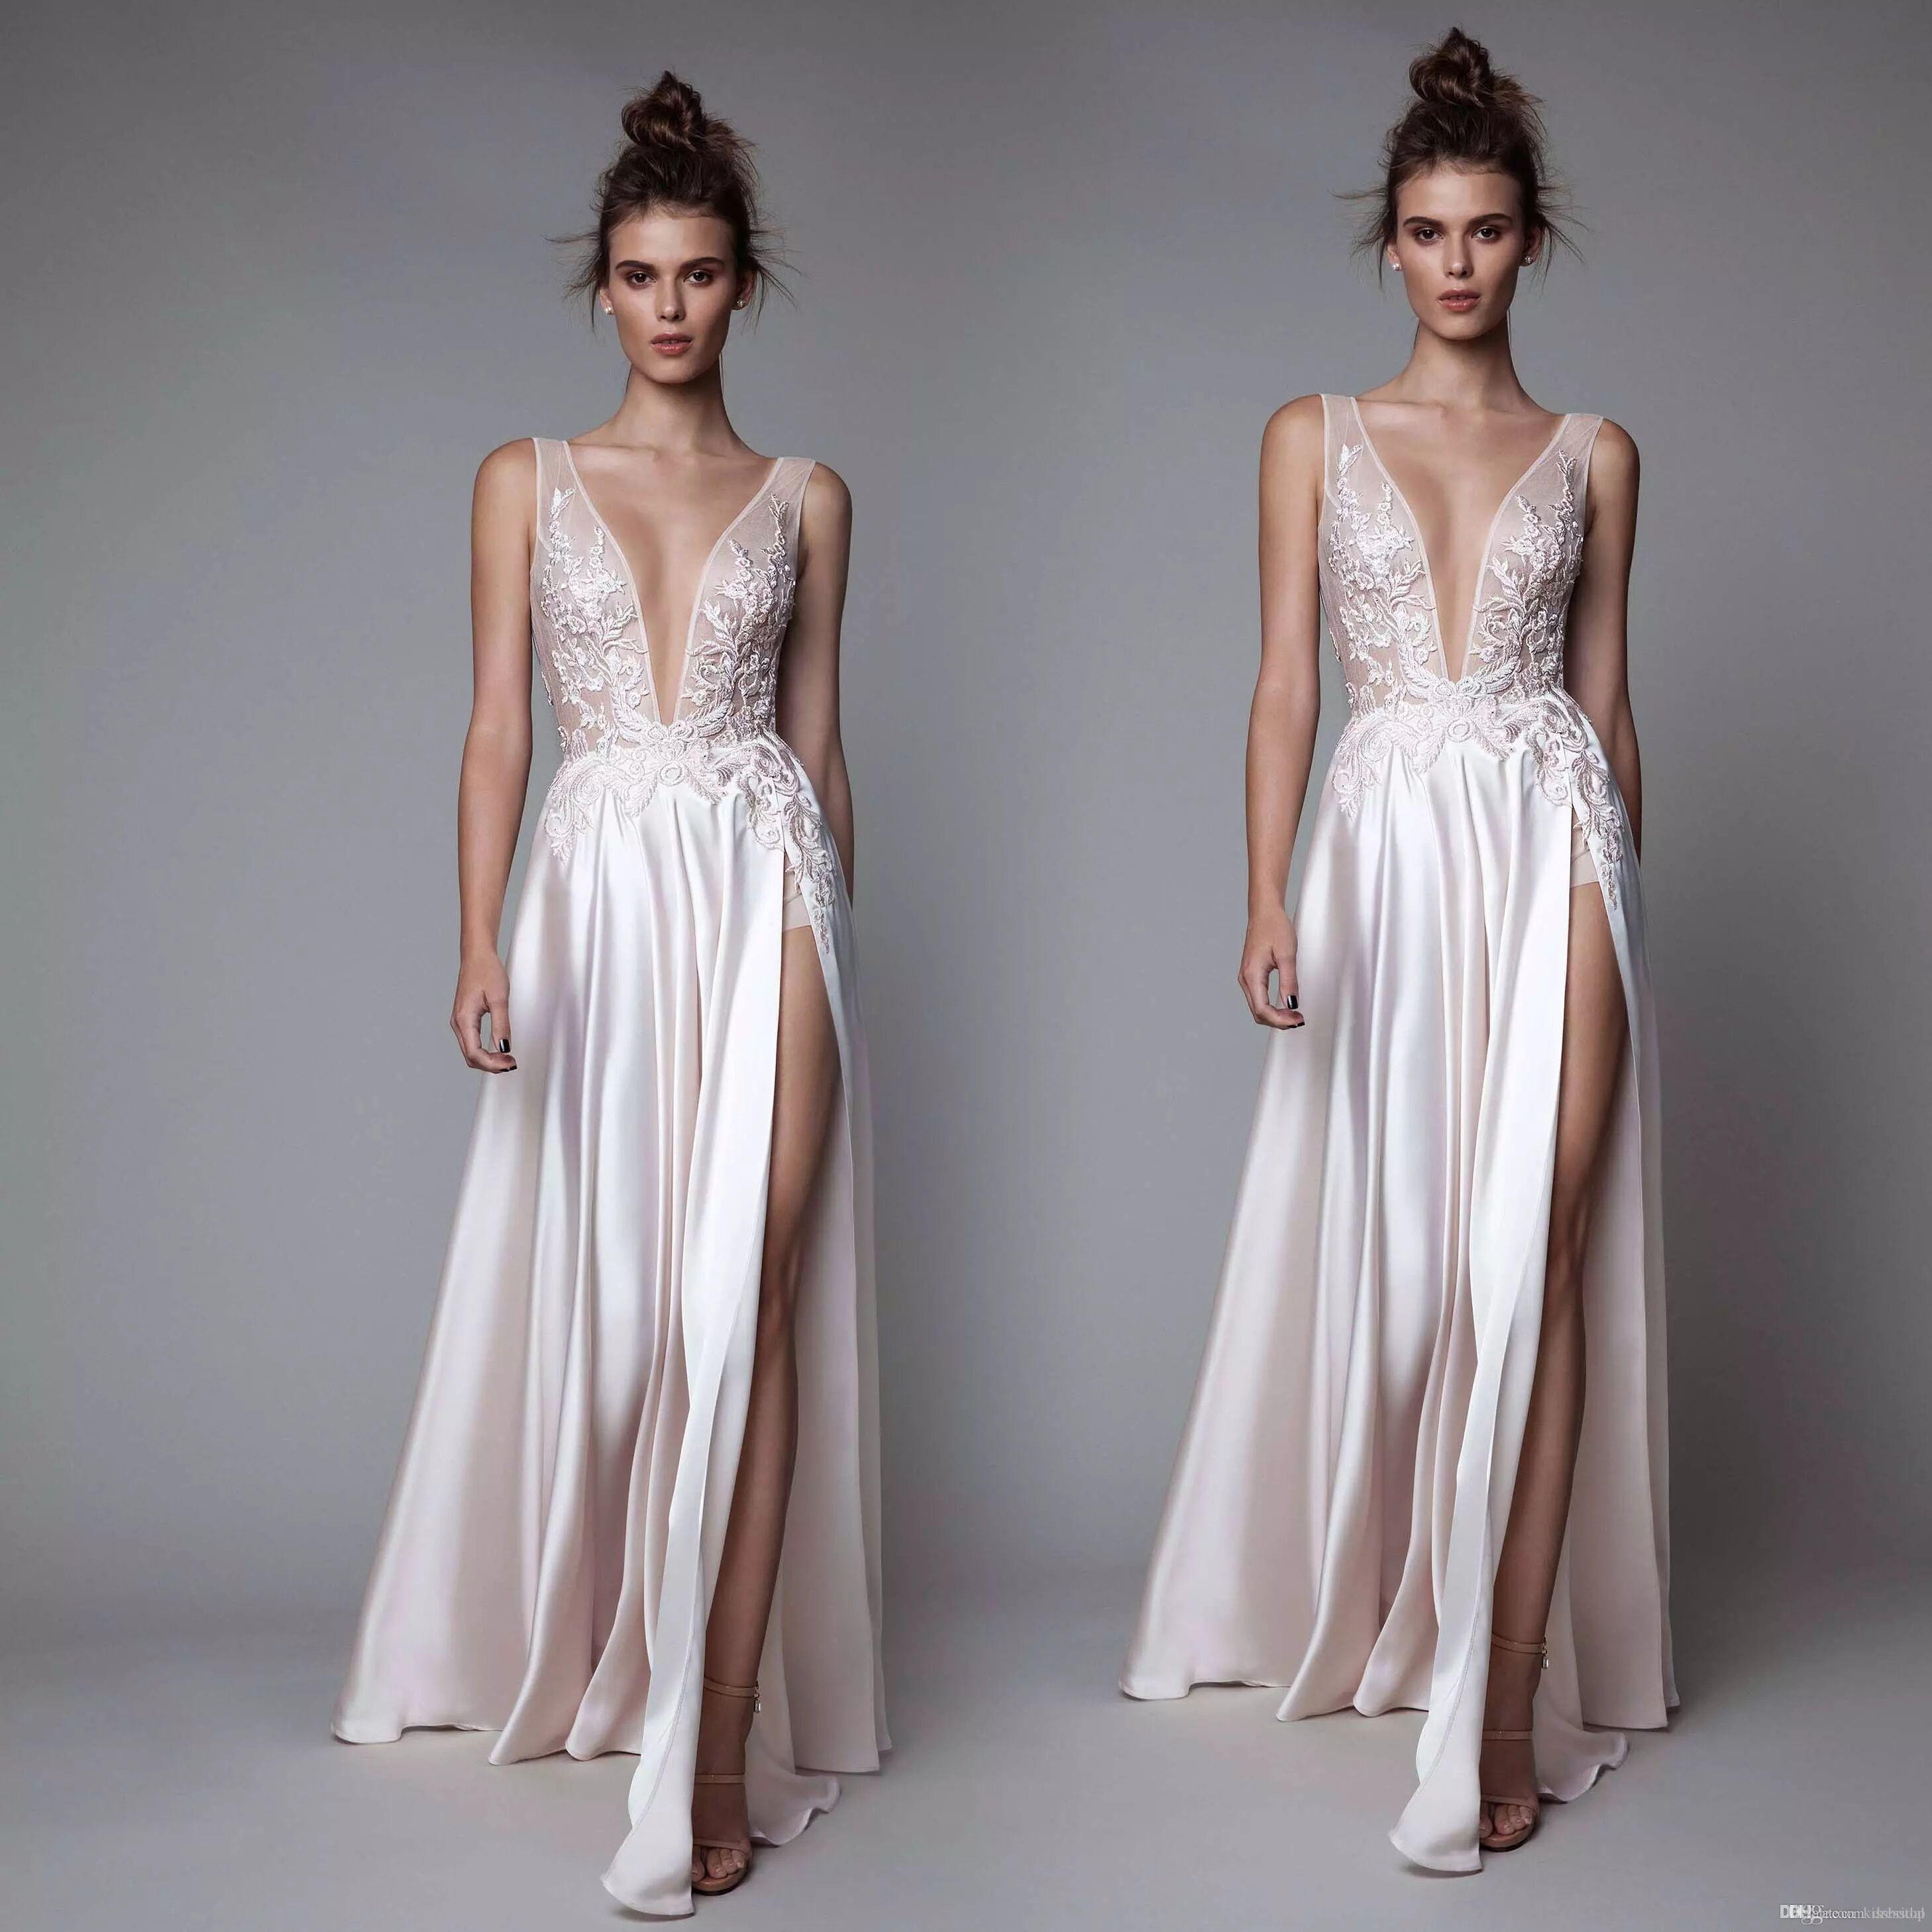 218d5f154f Sexy Berta Prom Dresses Plunging Neck Front Split Evening Gowns Floor Length  Embroidery Appliques A Line Party Dress Custom Made Middle School Prom  Dresses ...